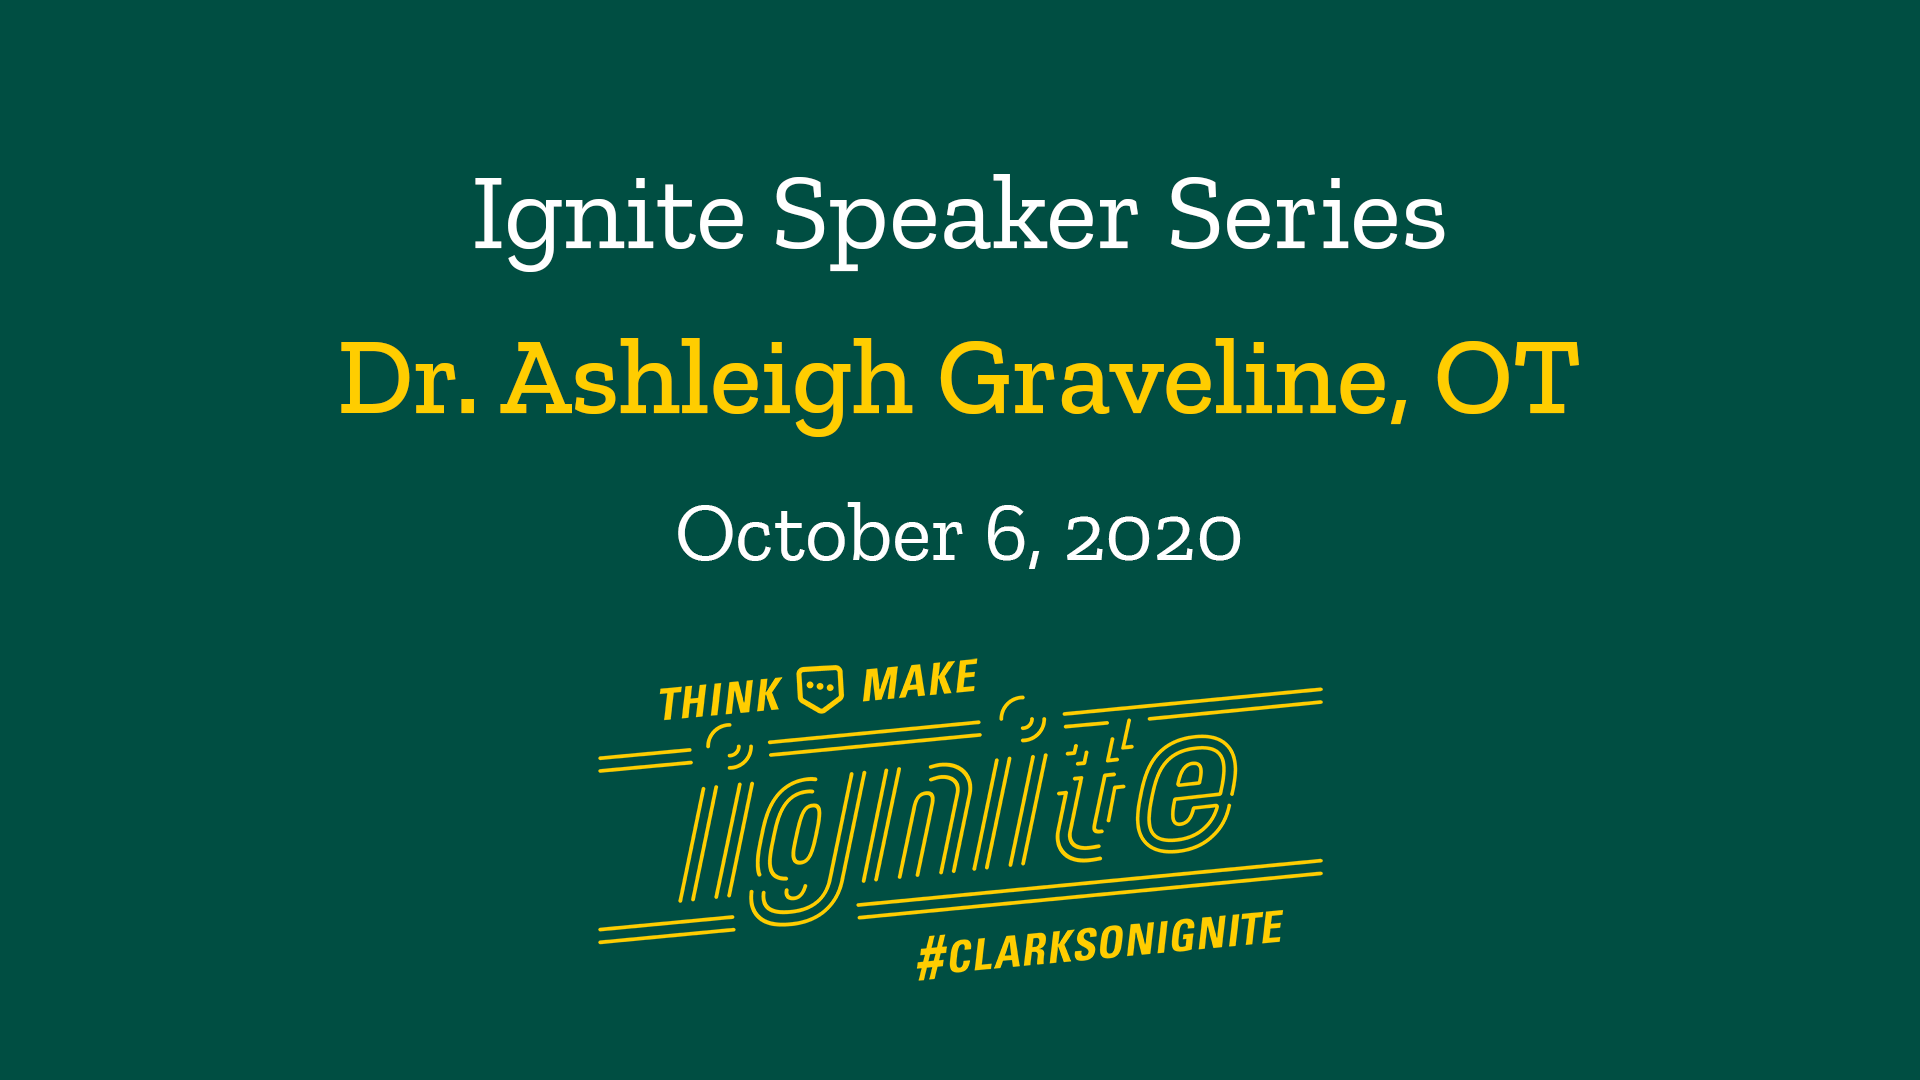 Ignite Speaker Series- October 6, 2020 @ 2 PM